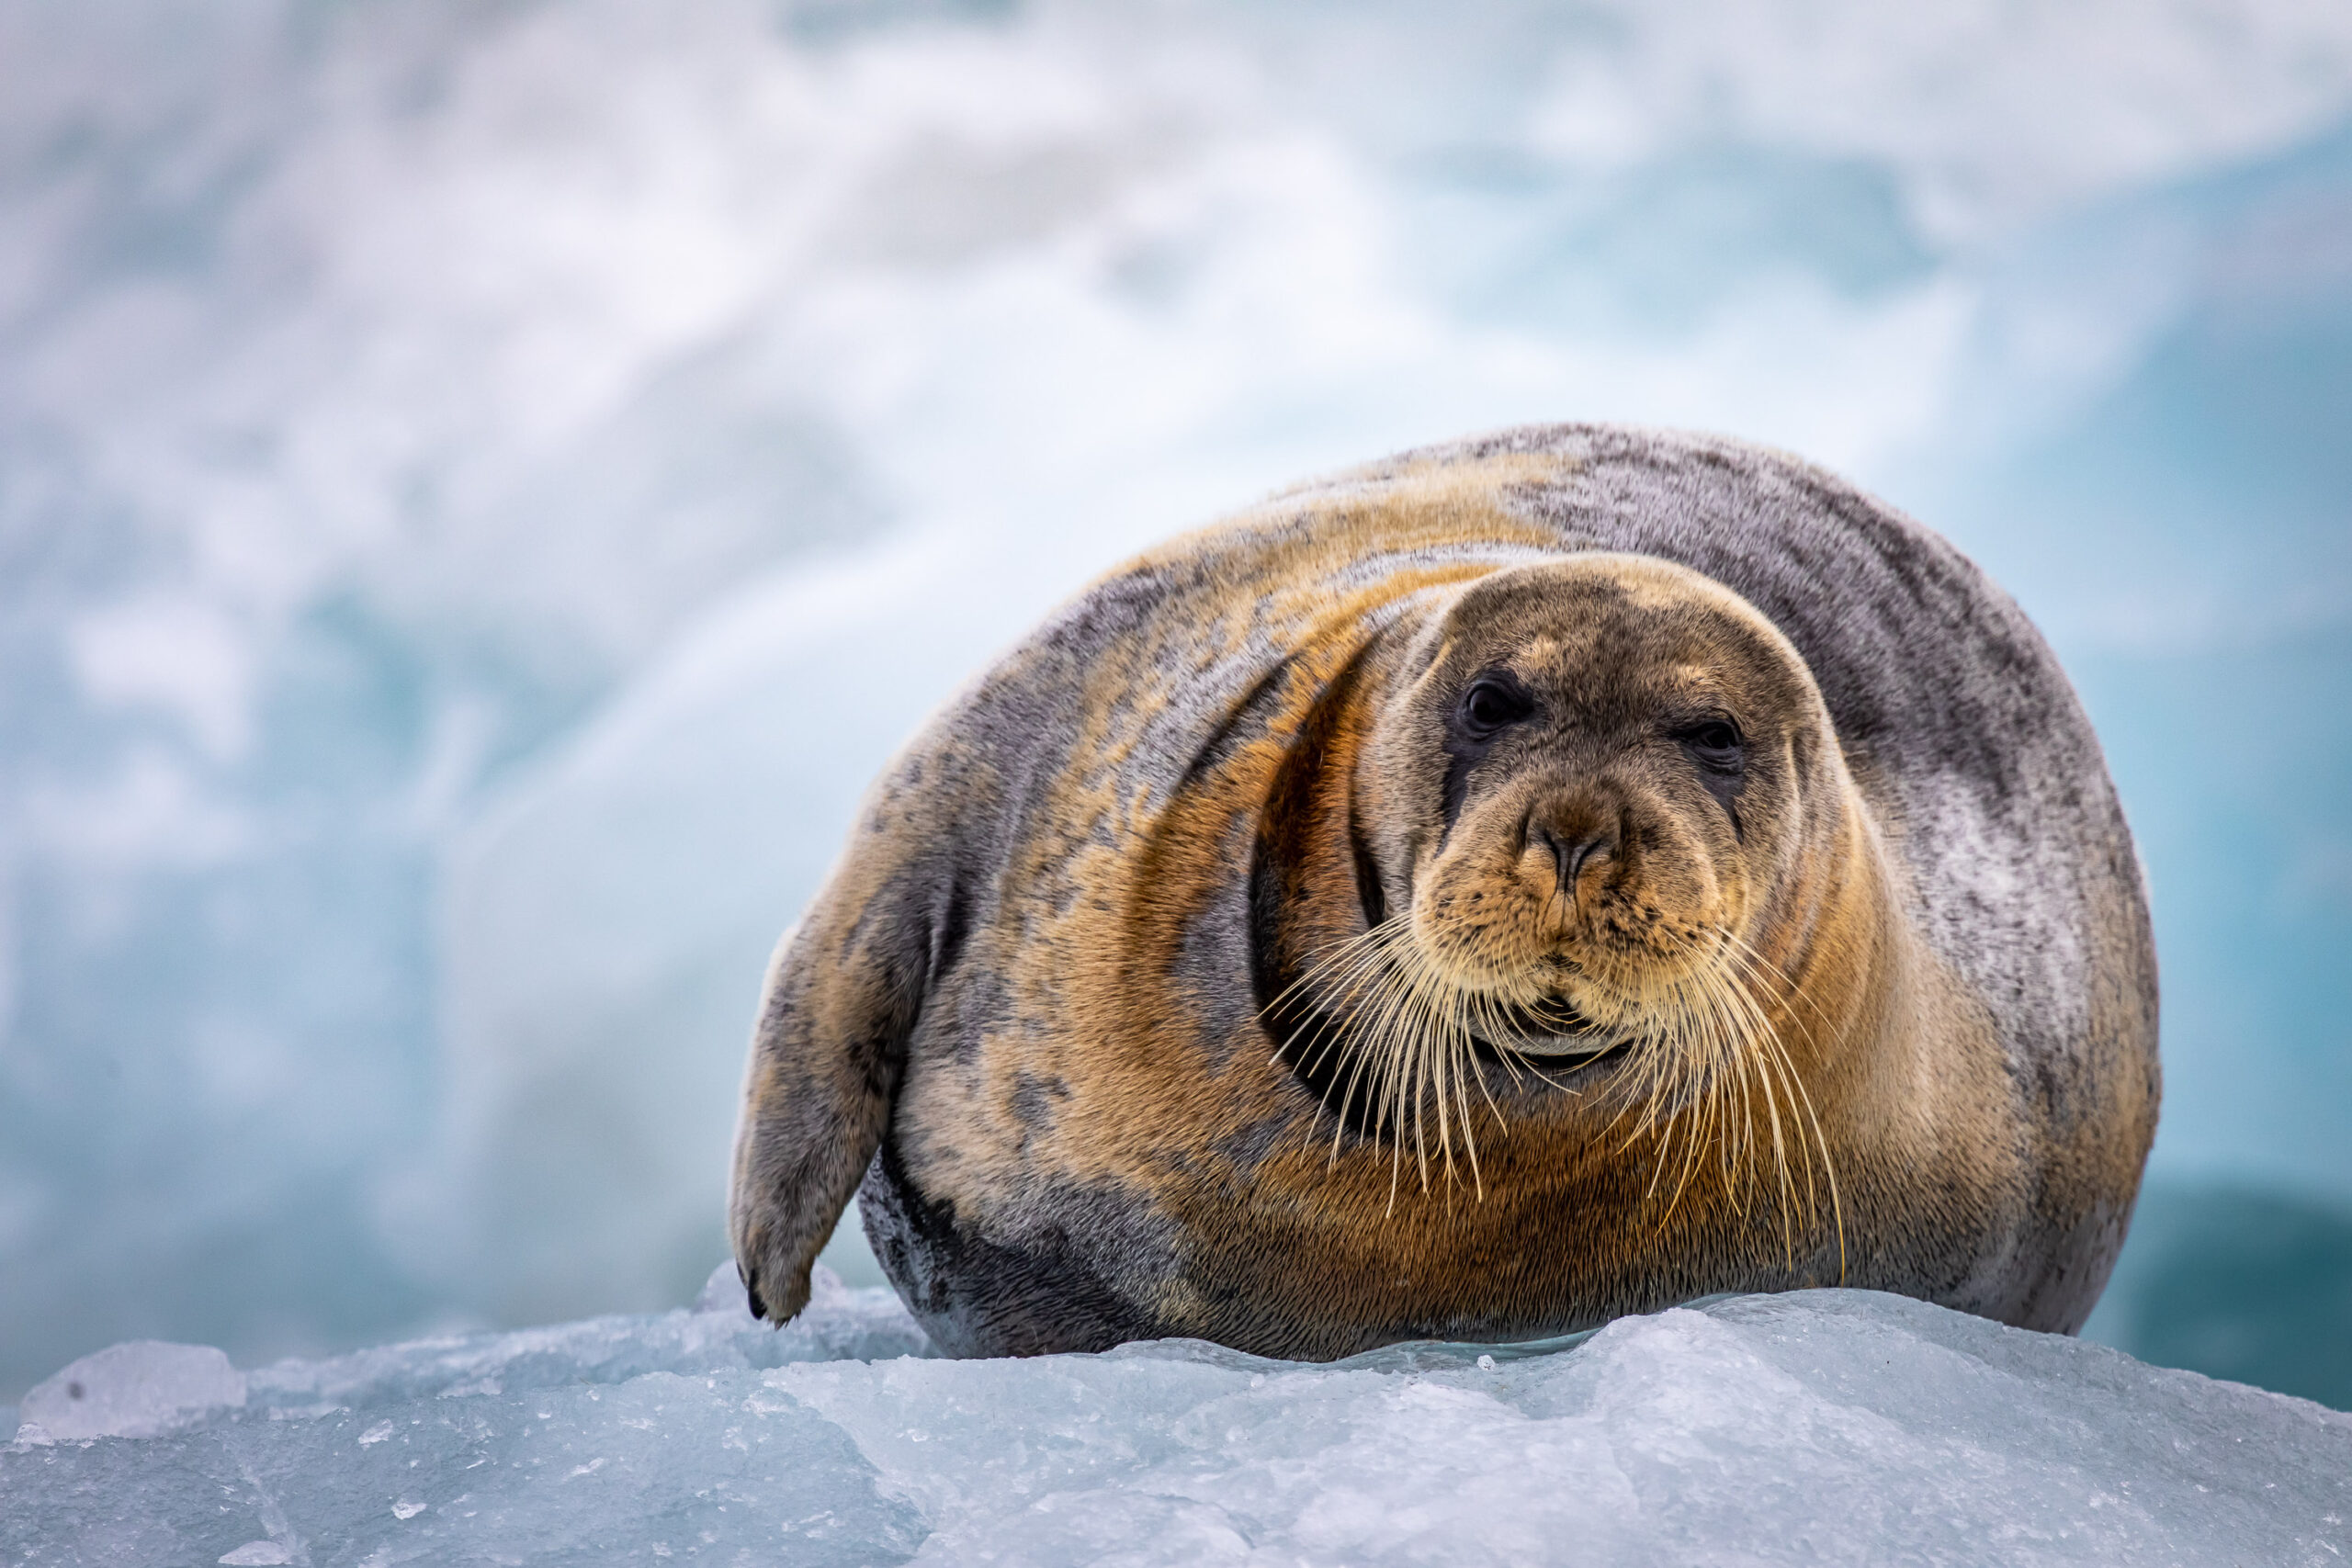 http://Seal%20on%20Ice